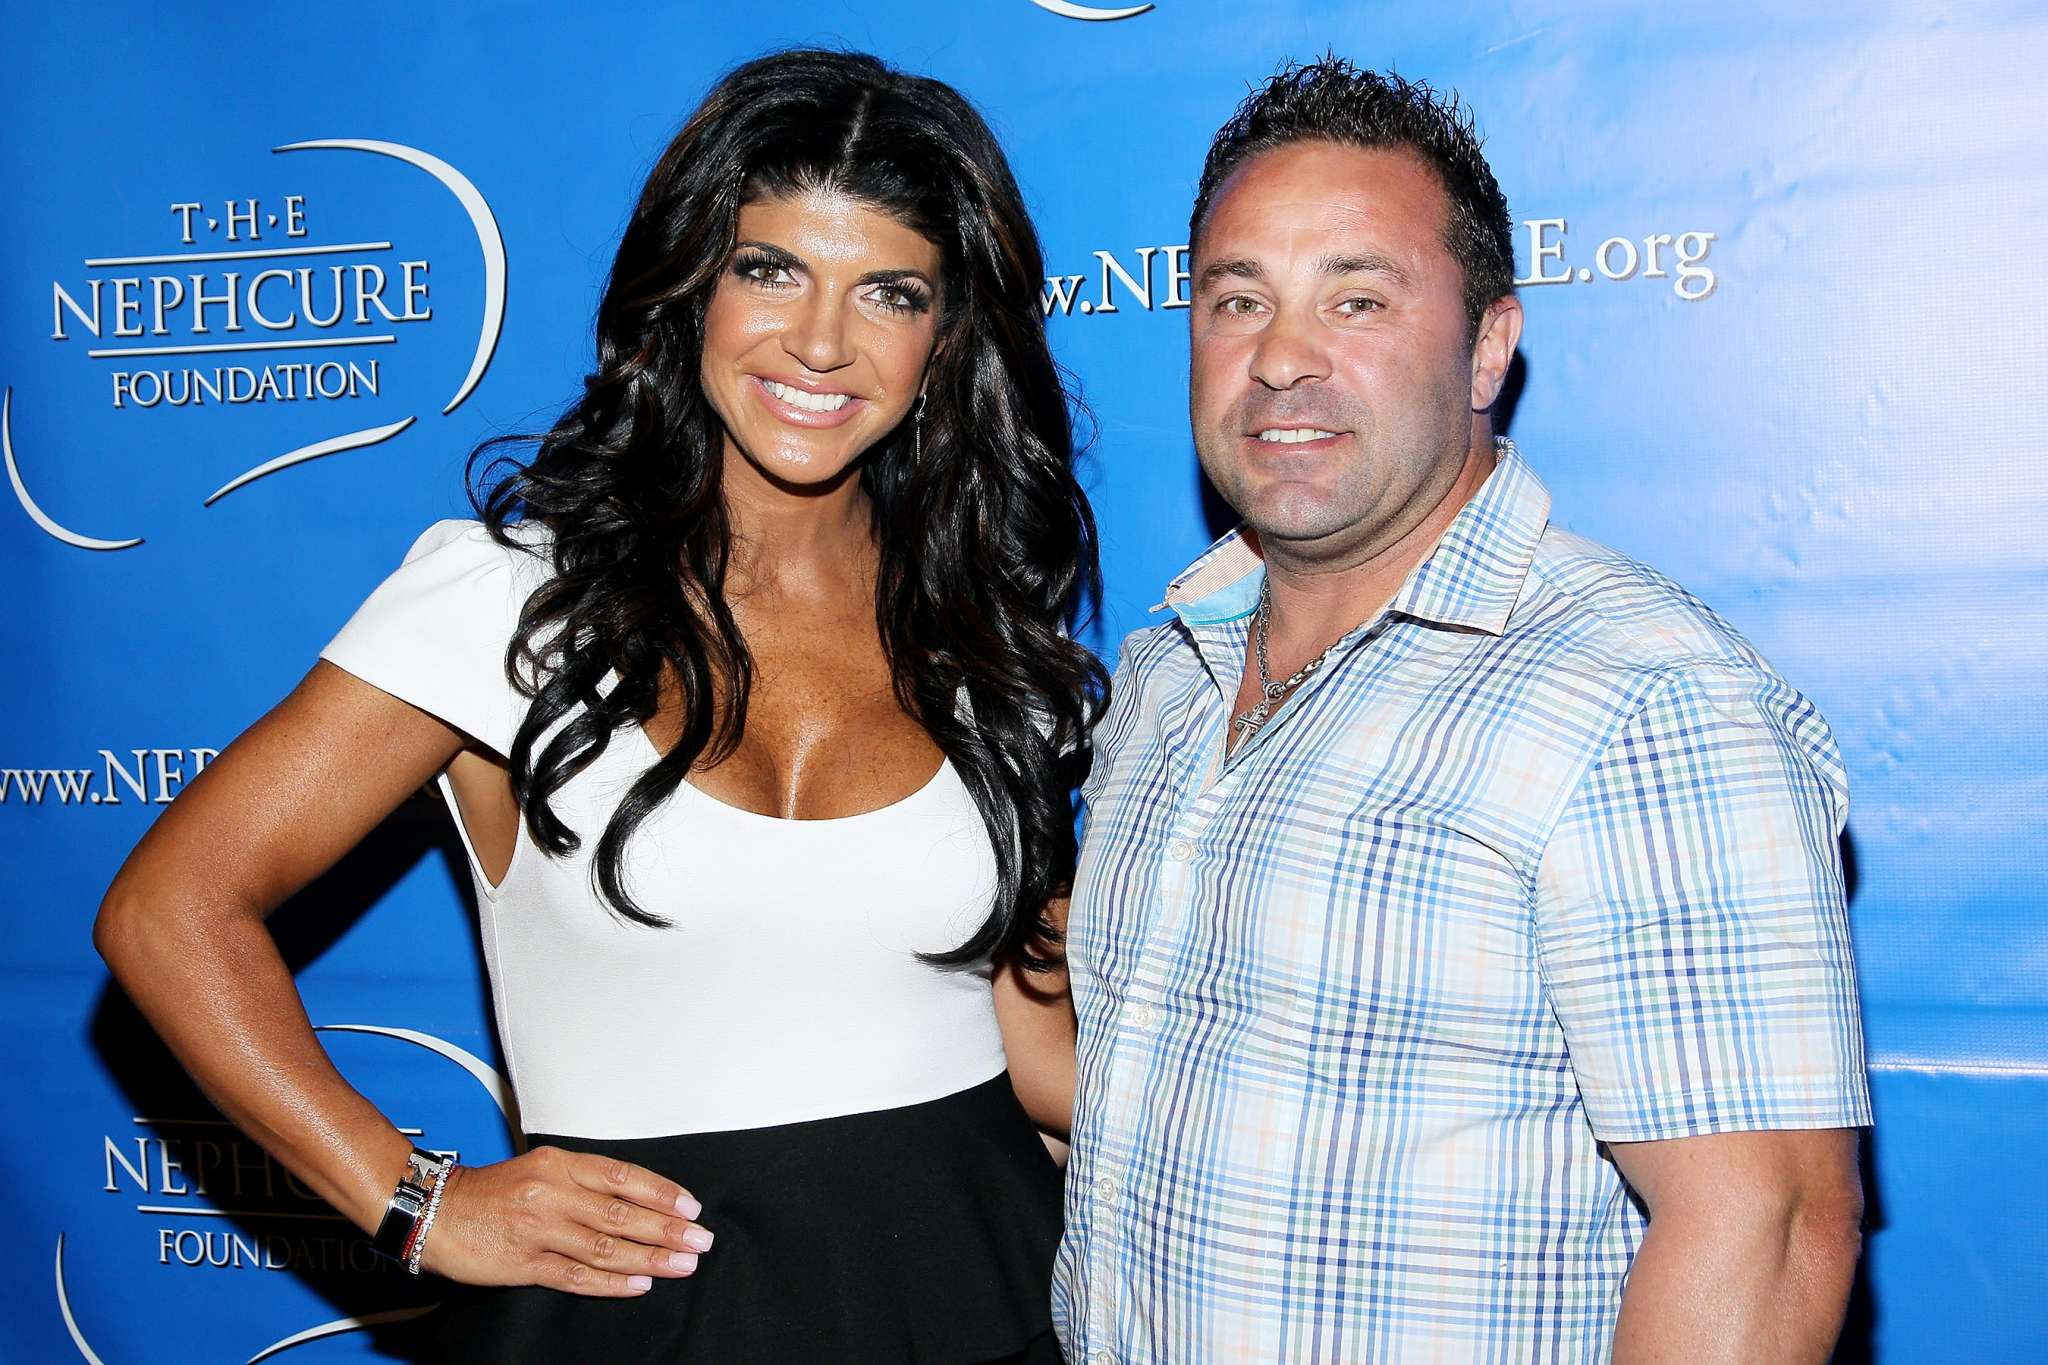 teresa-giudice-was-seen-flirting-and-exchanging-numbers-with-a-man-during-club-outing-amid-husband-joes-deportation-drama